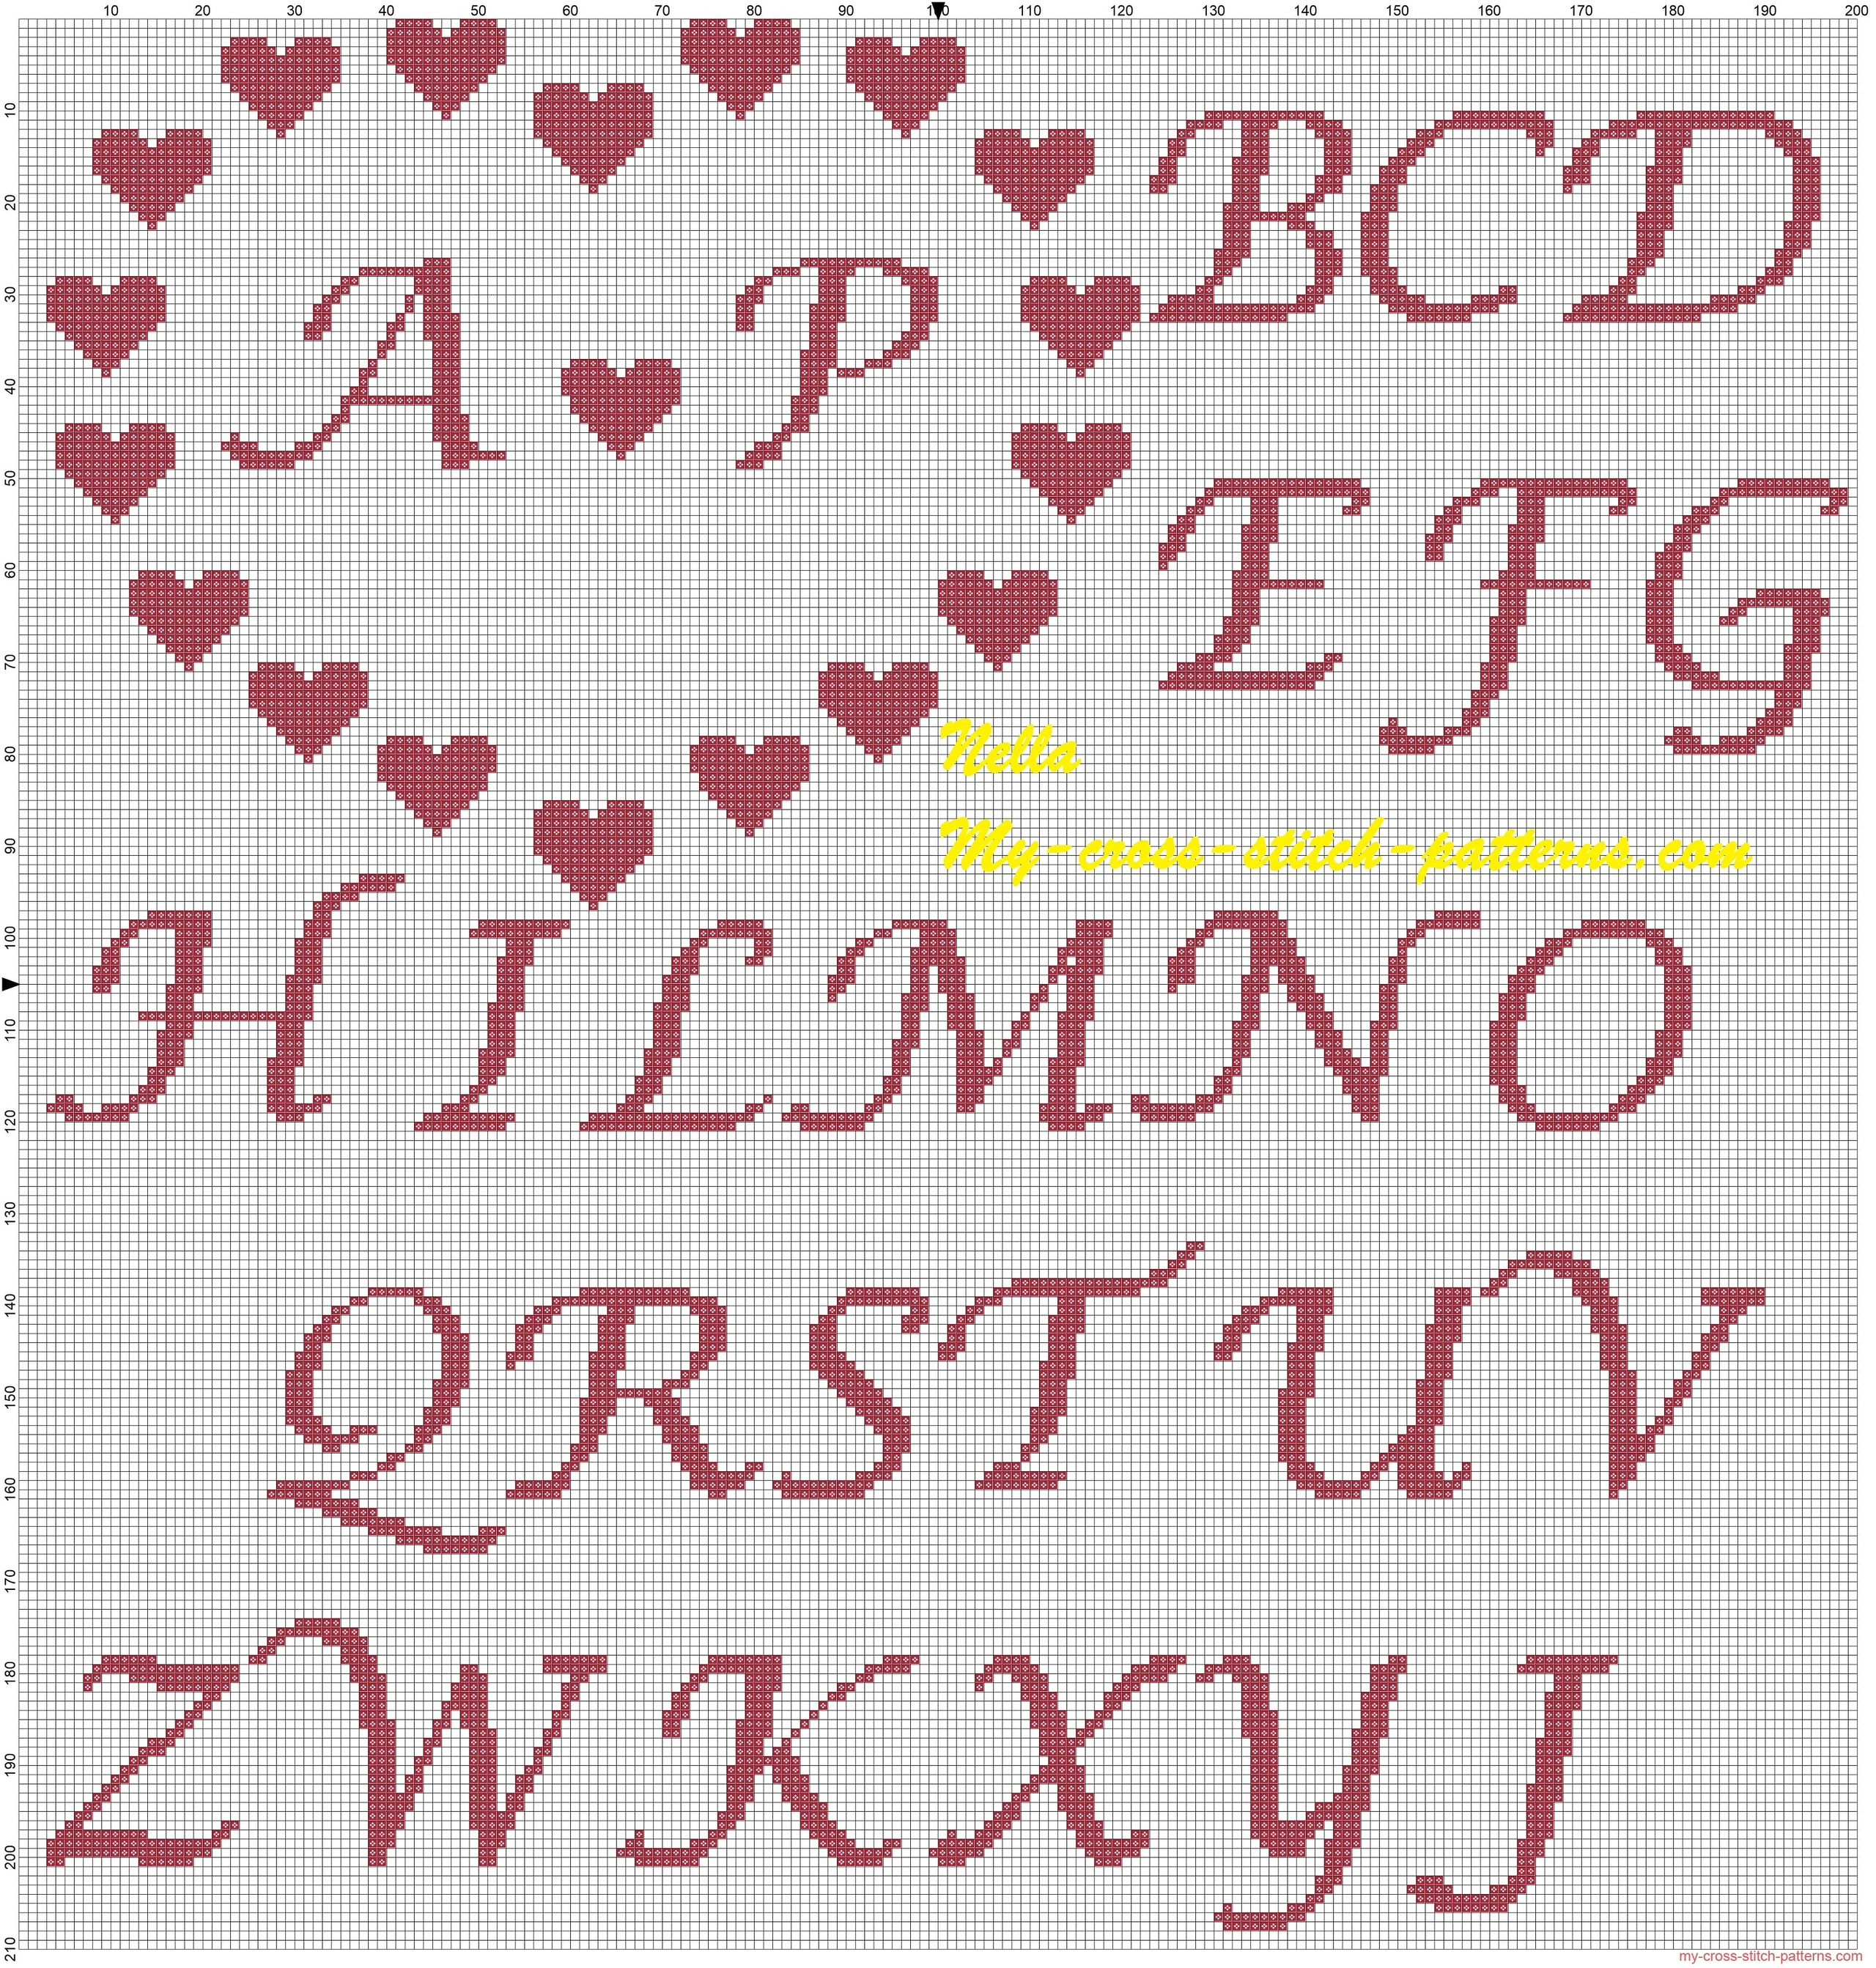 ring_pillows_initials_and_hearts_cross_stitch_pattern